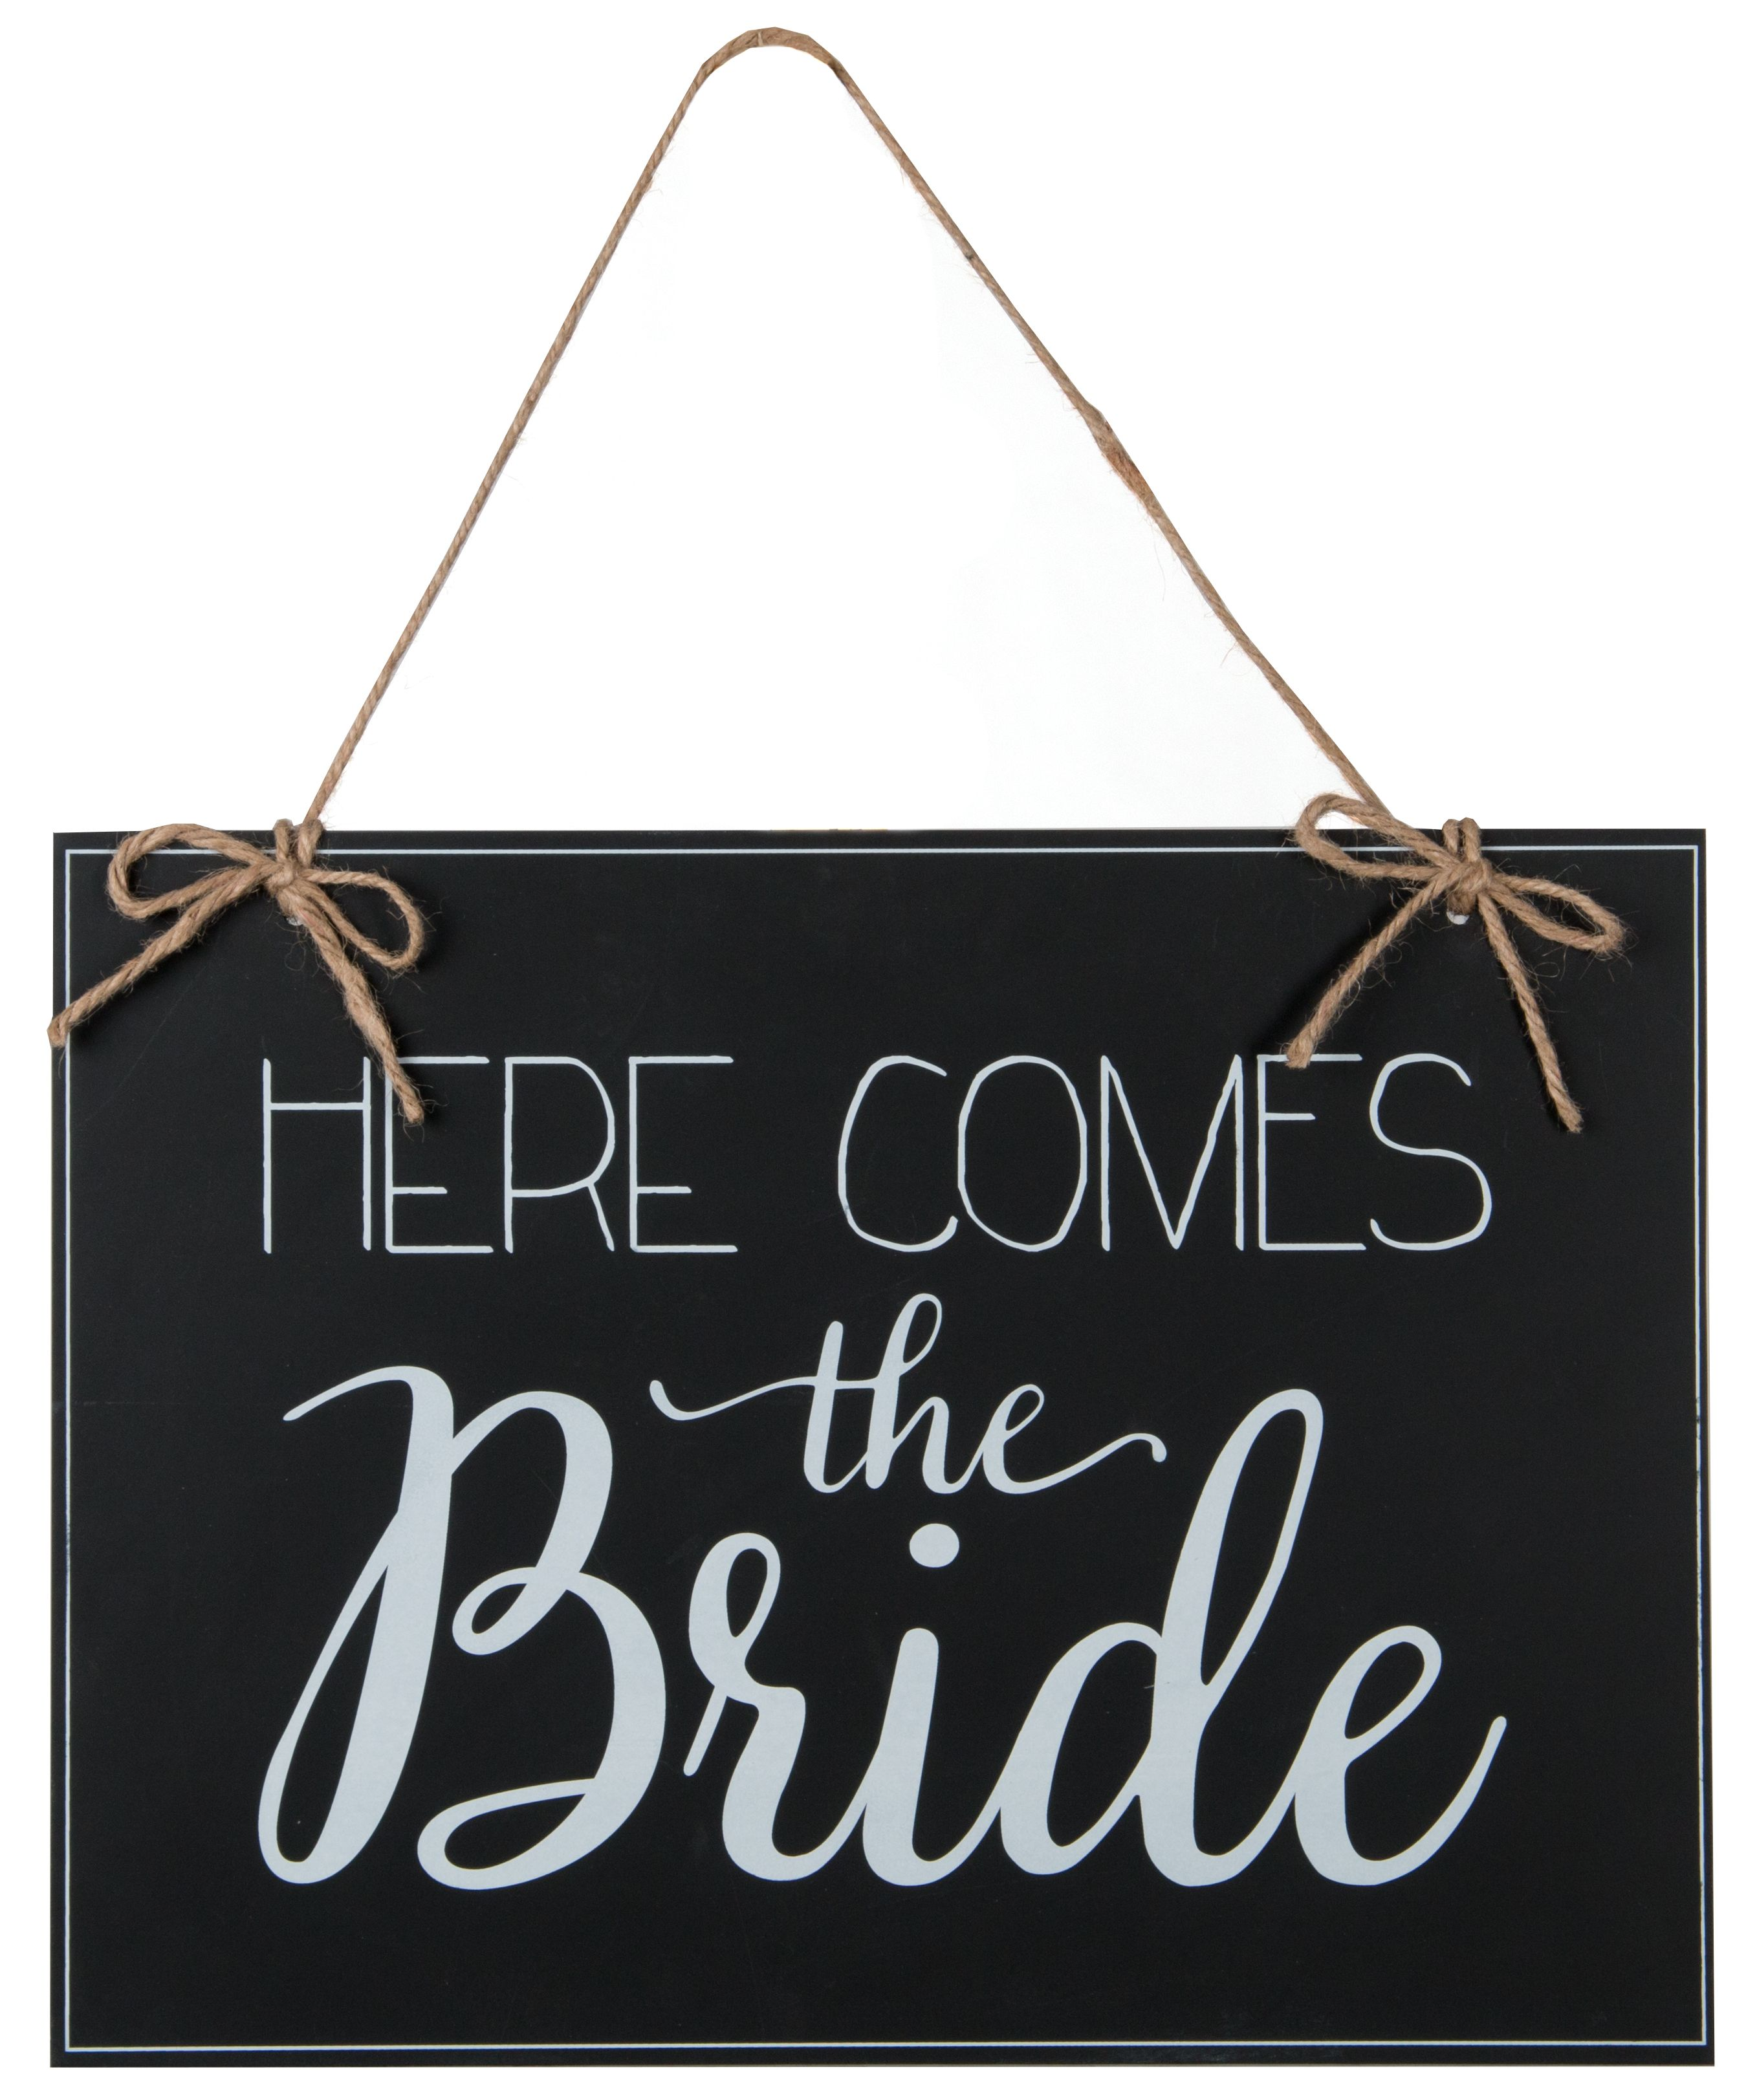 Here Comes the Bride by Burnes of Boston